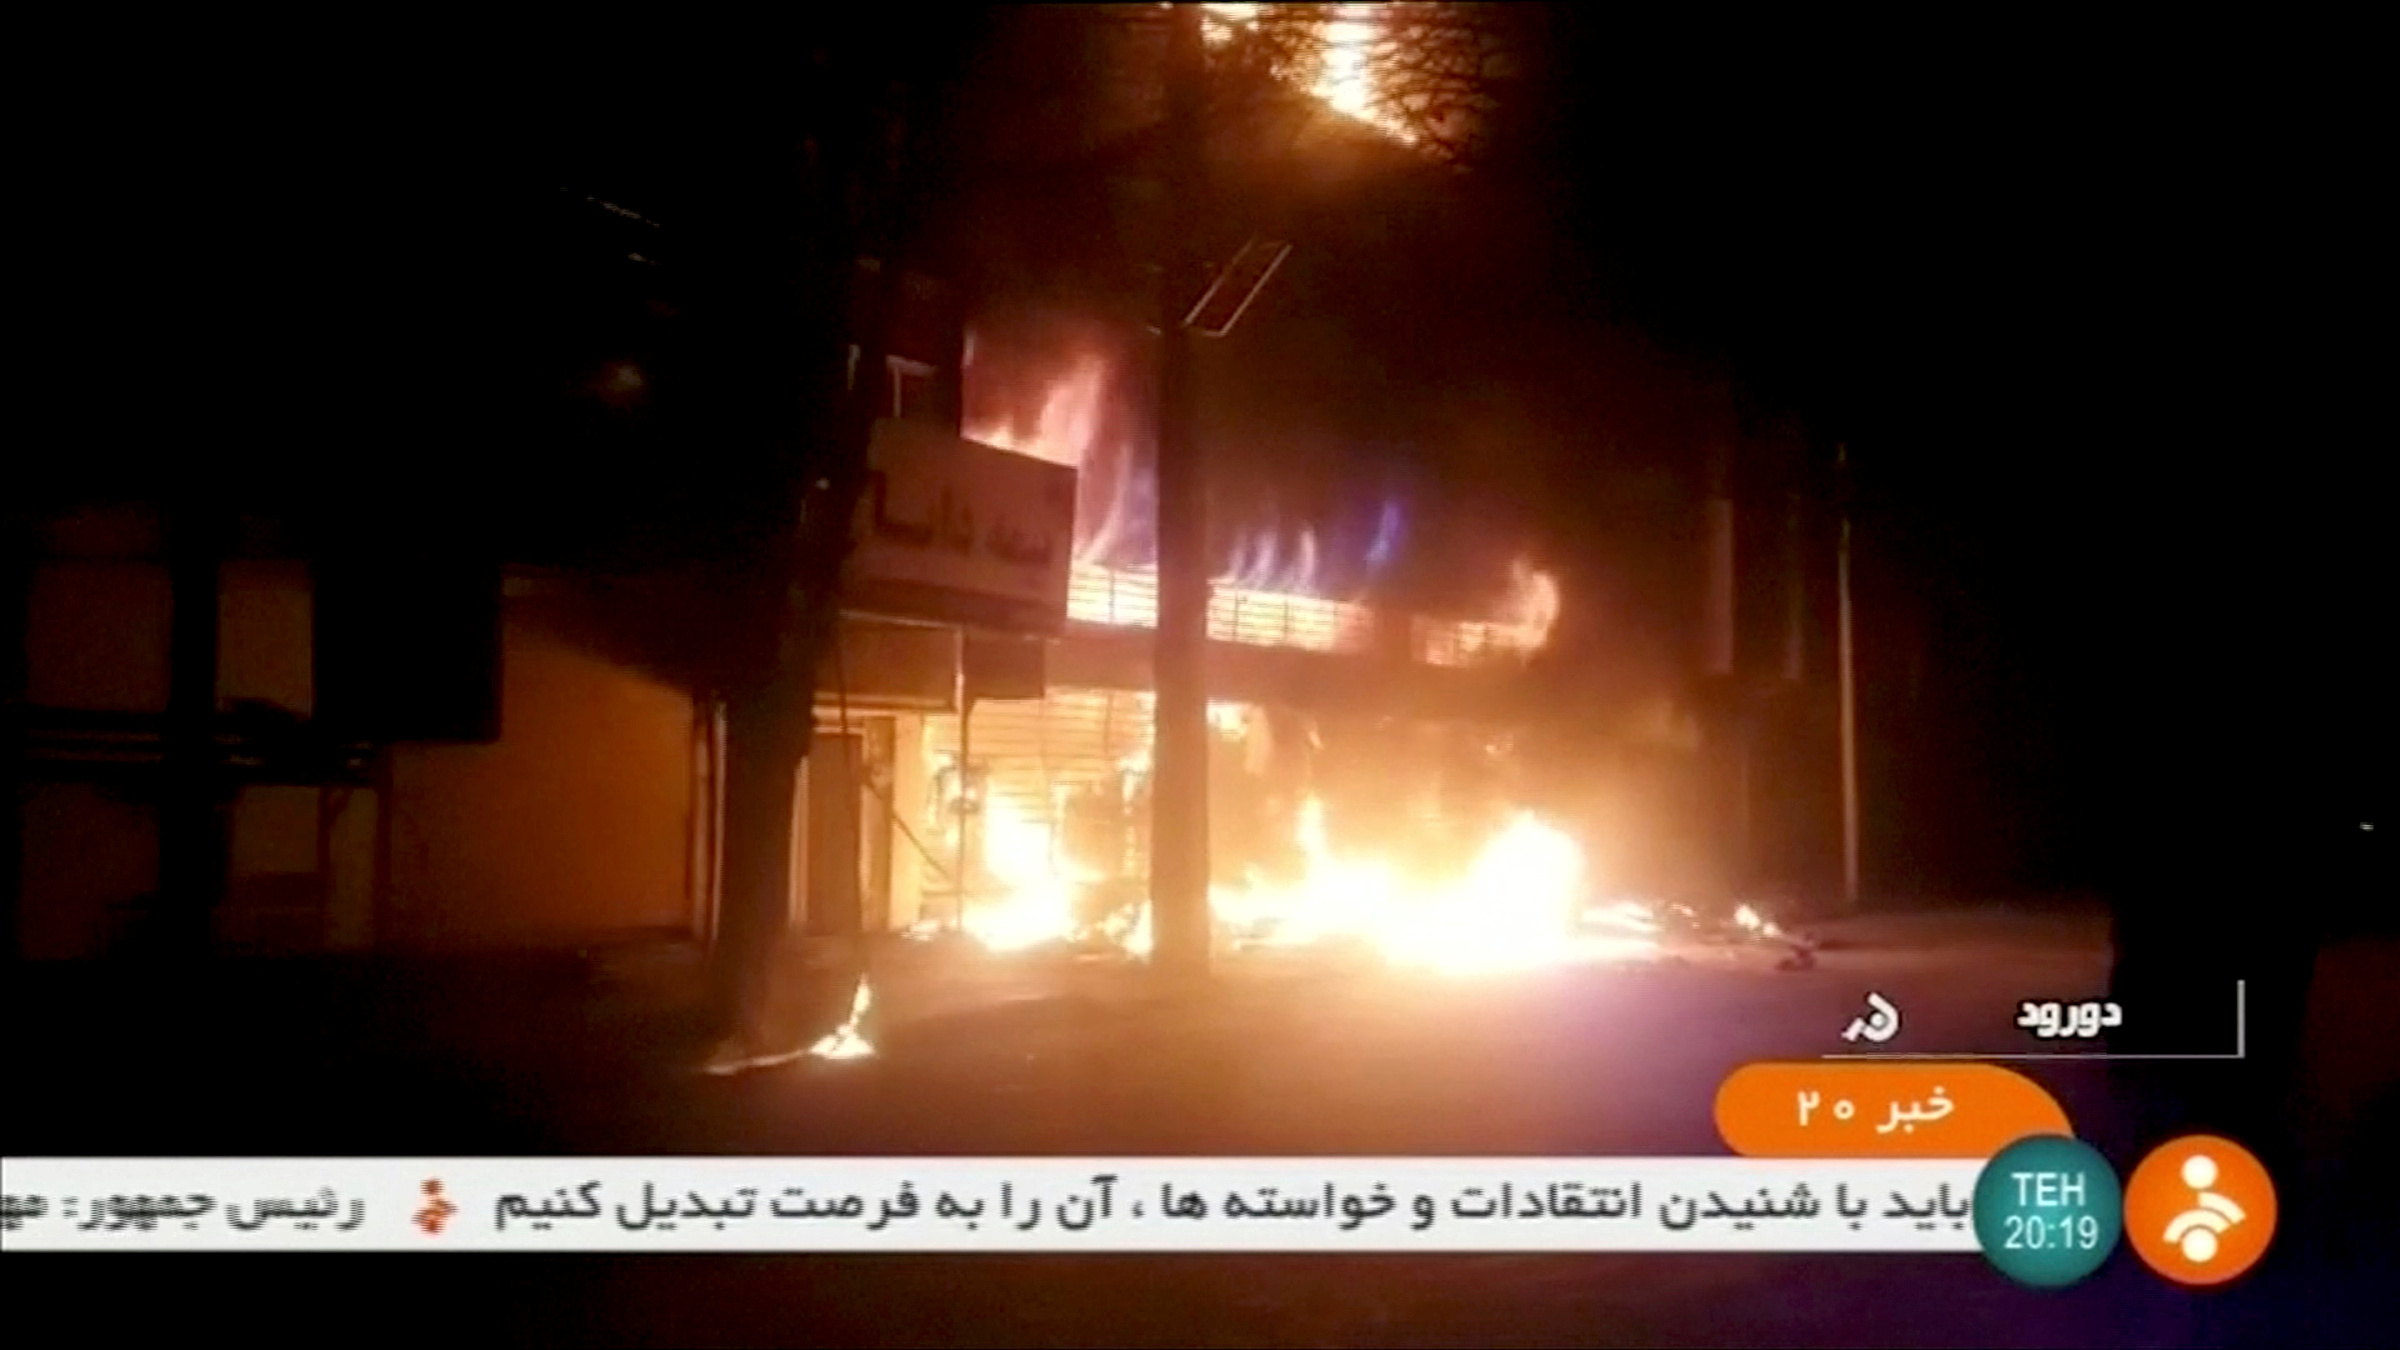 A building burns during street protests in Dorud, Iran.